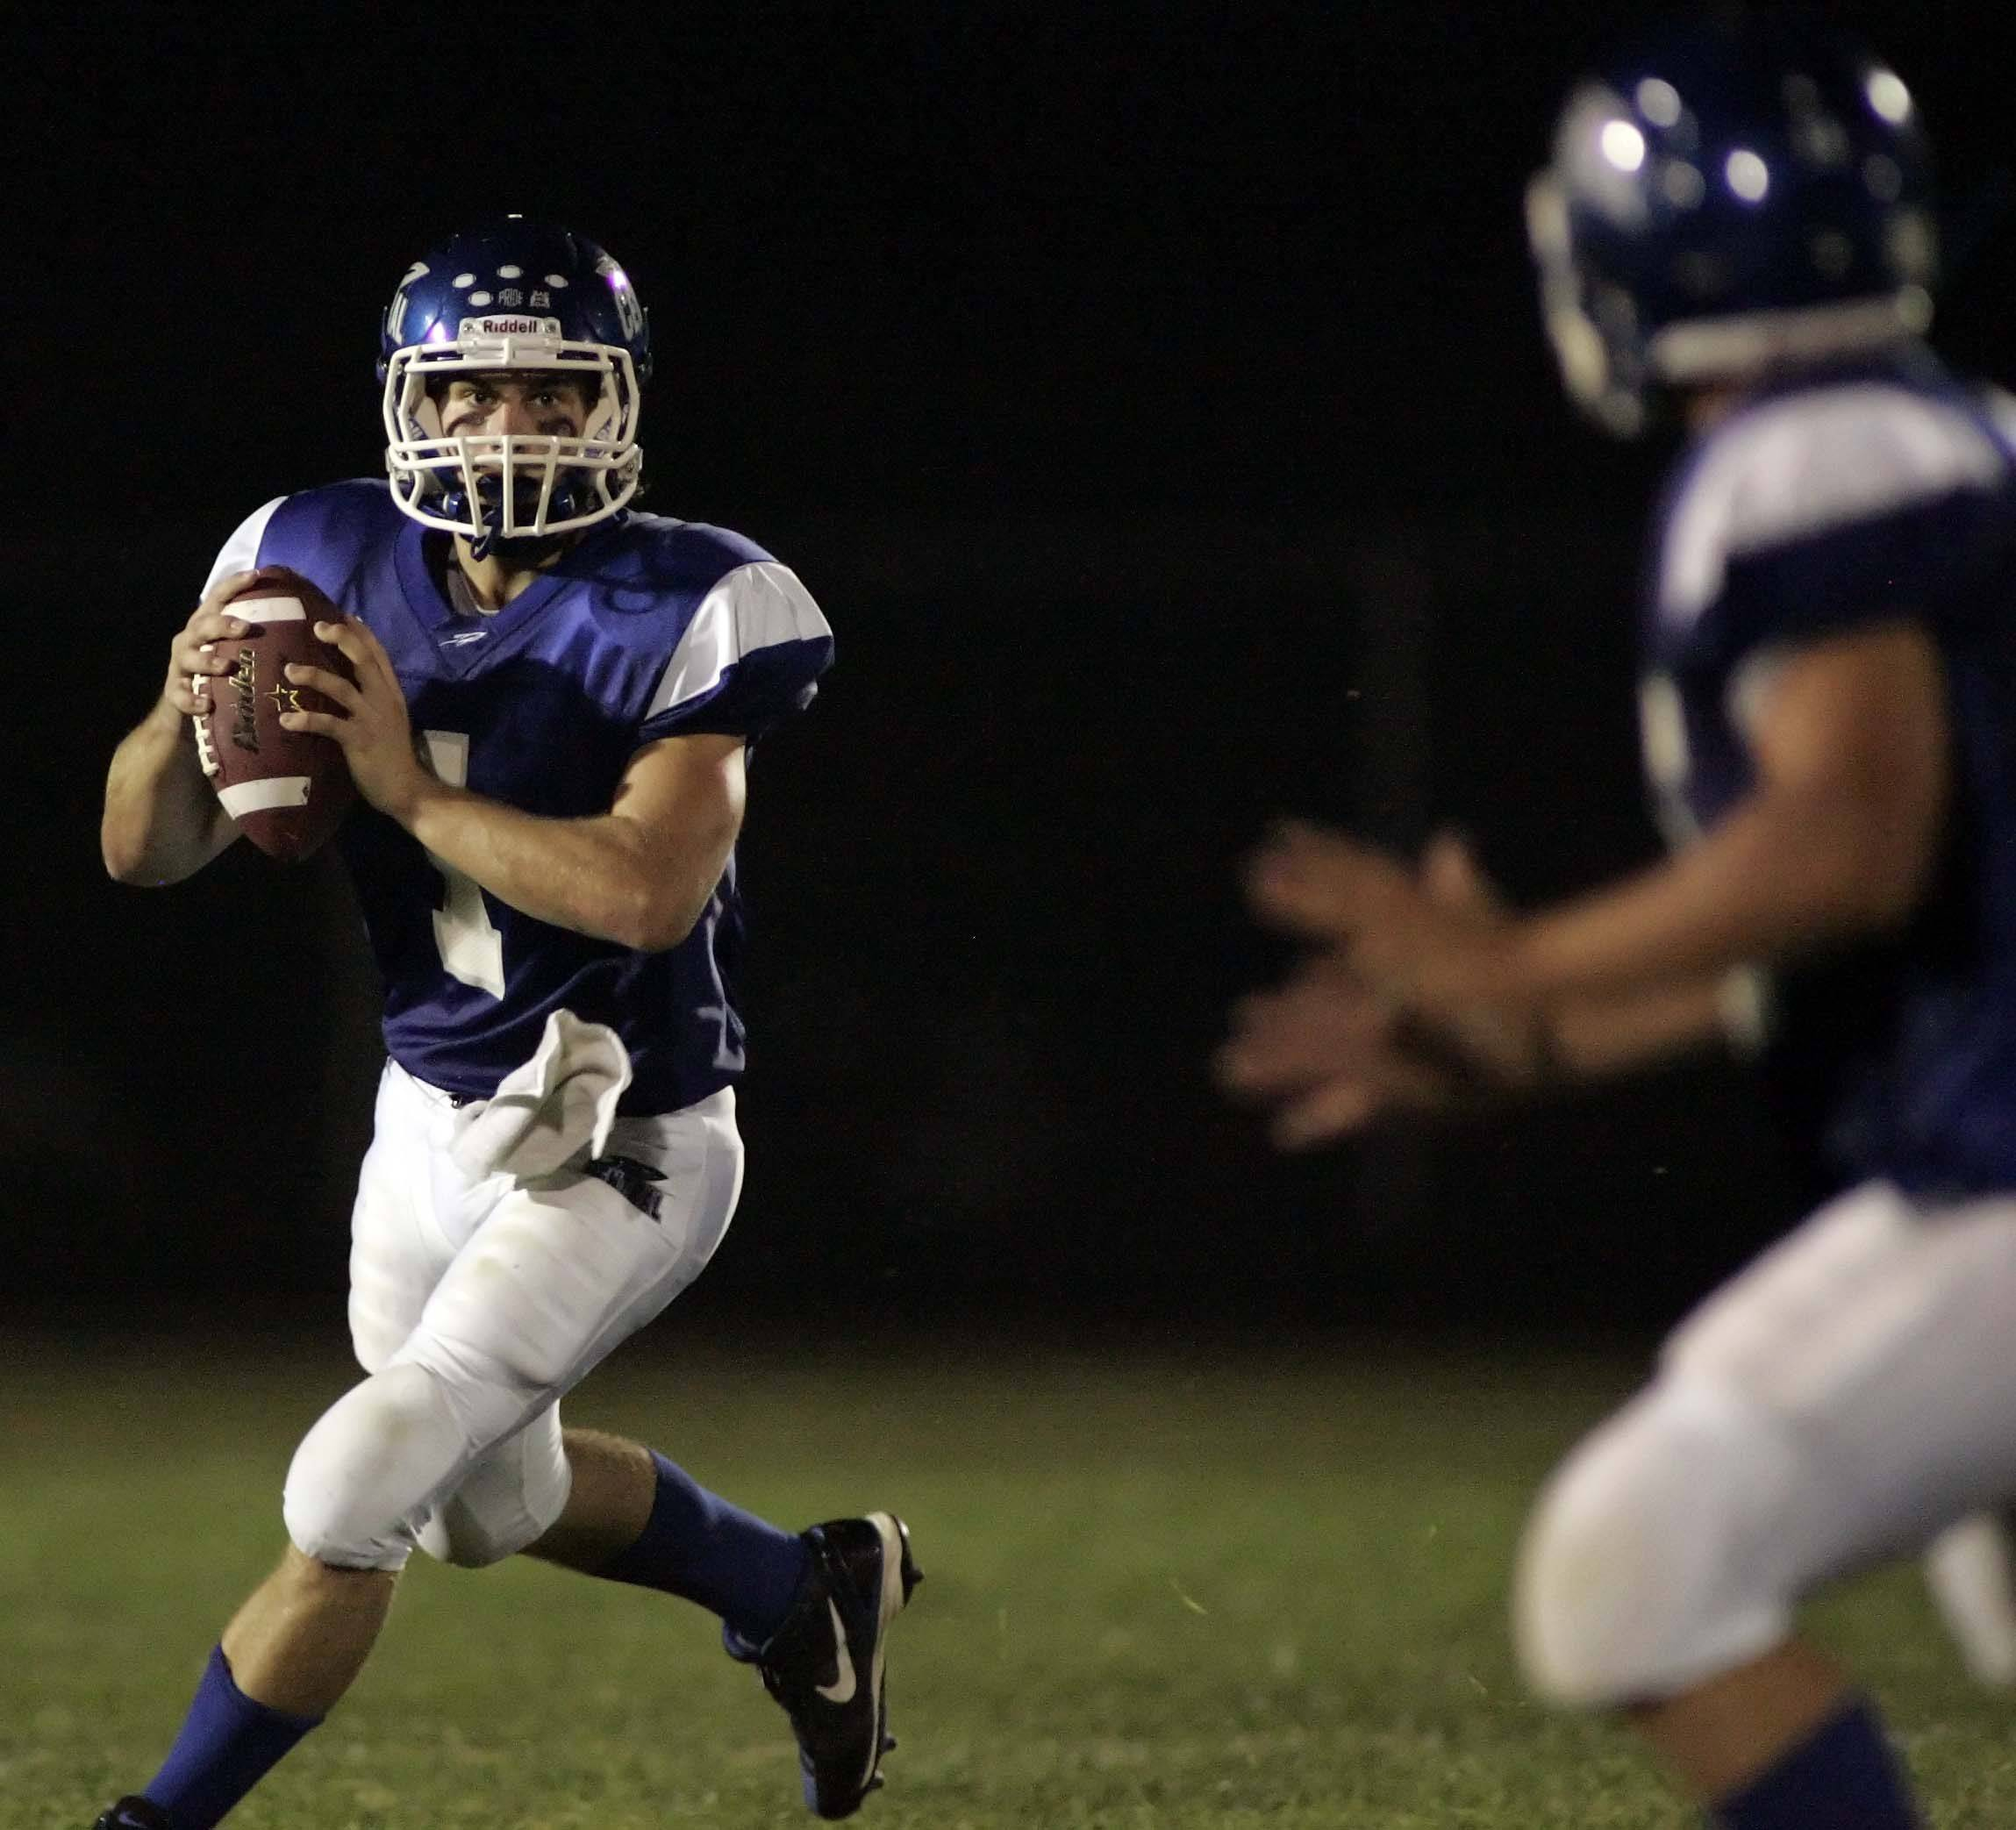 Burlington Central quarterback Ryan Ritchie looks upfield against Sycamore earlier this season. The Rockets (4-2) travel to undefeated Harvard tonight.